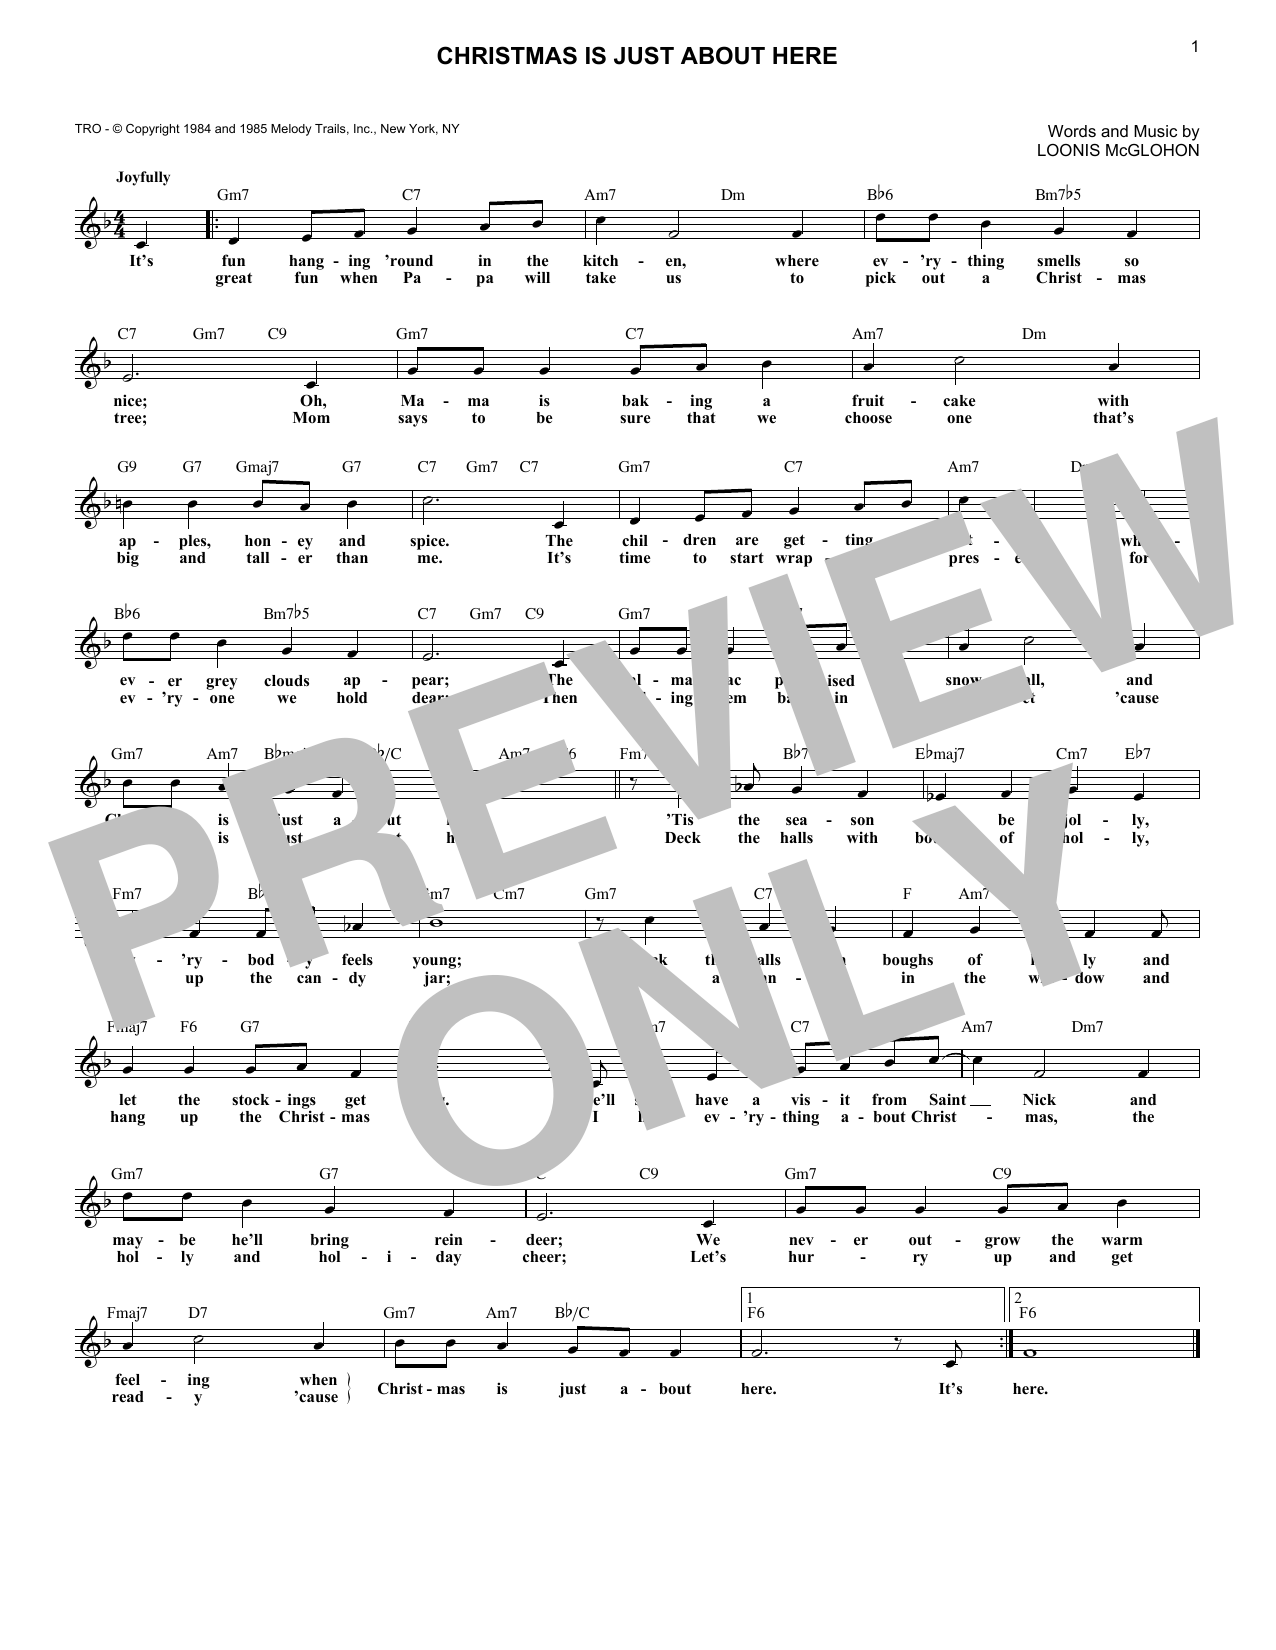 Loonis McGlohon Christmas Is Just About Here sheet music notes and chords